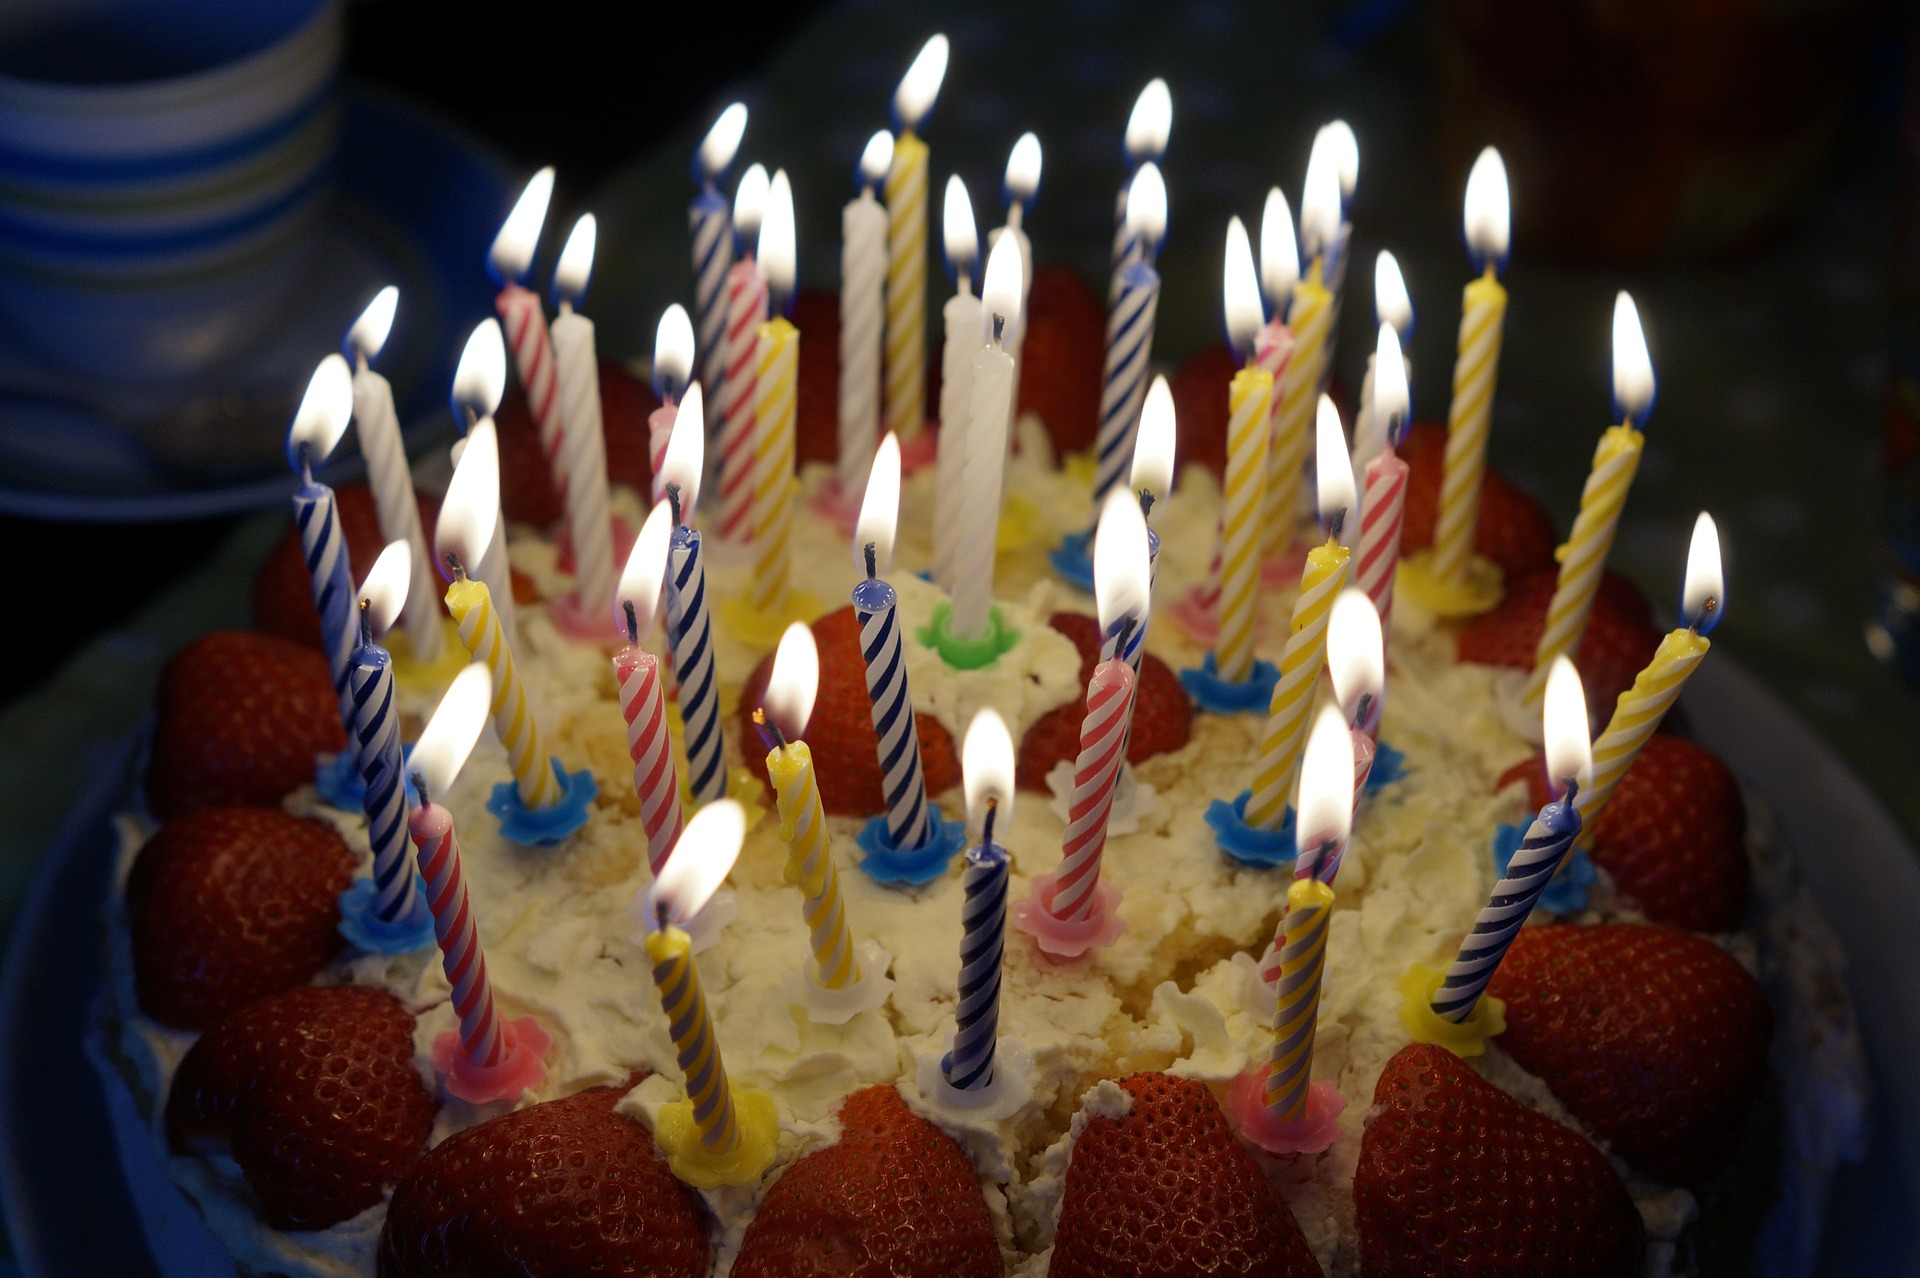 Birthday Cake with lots of candles